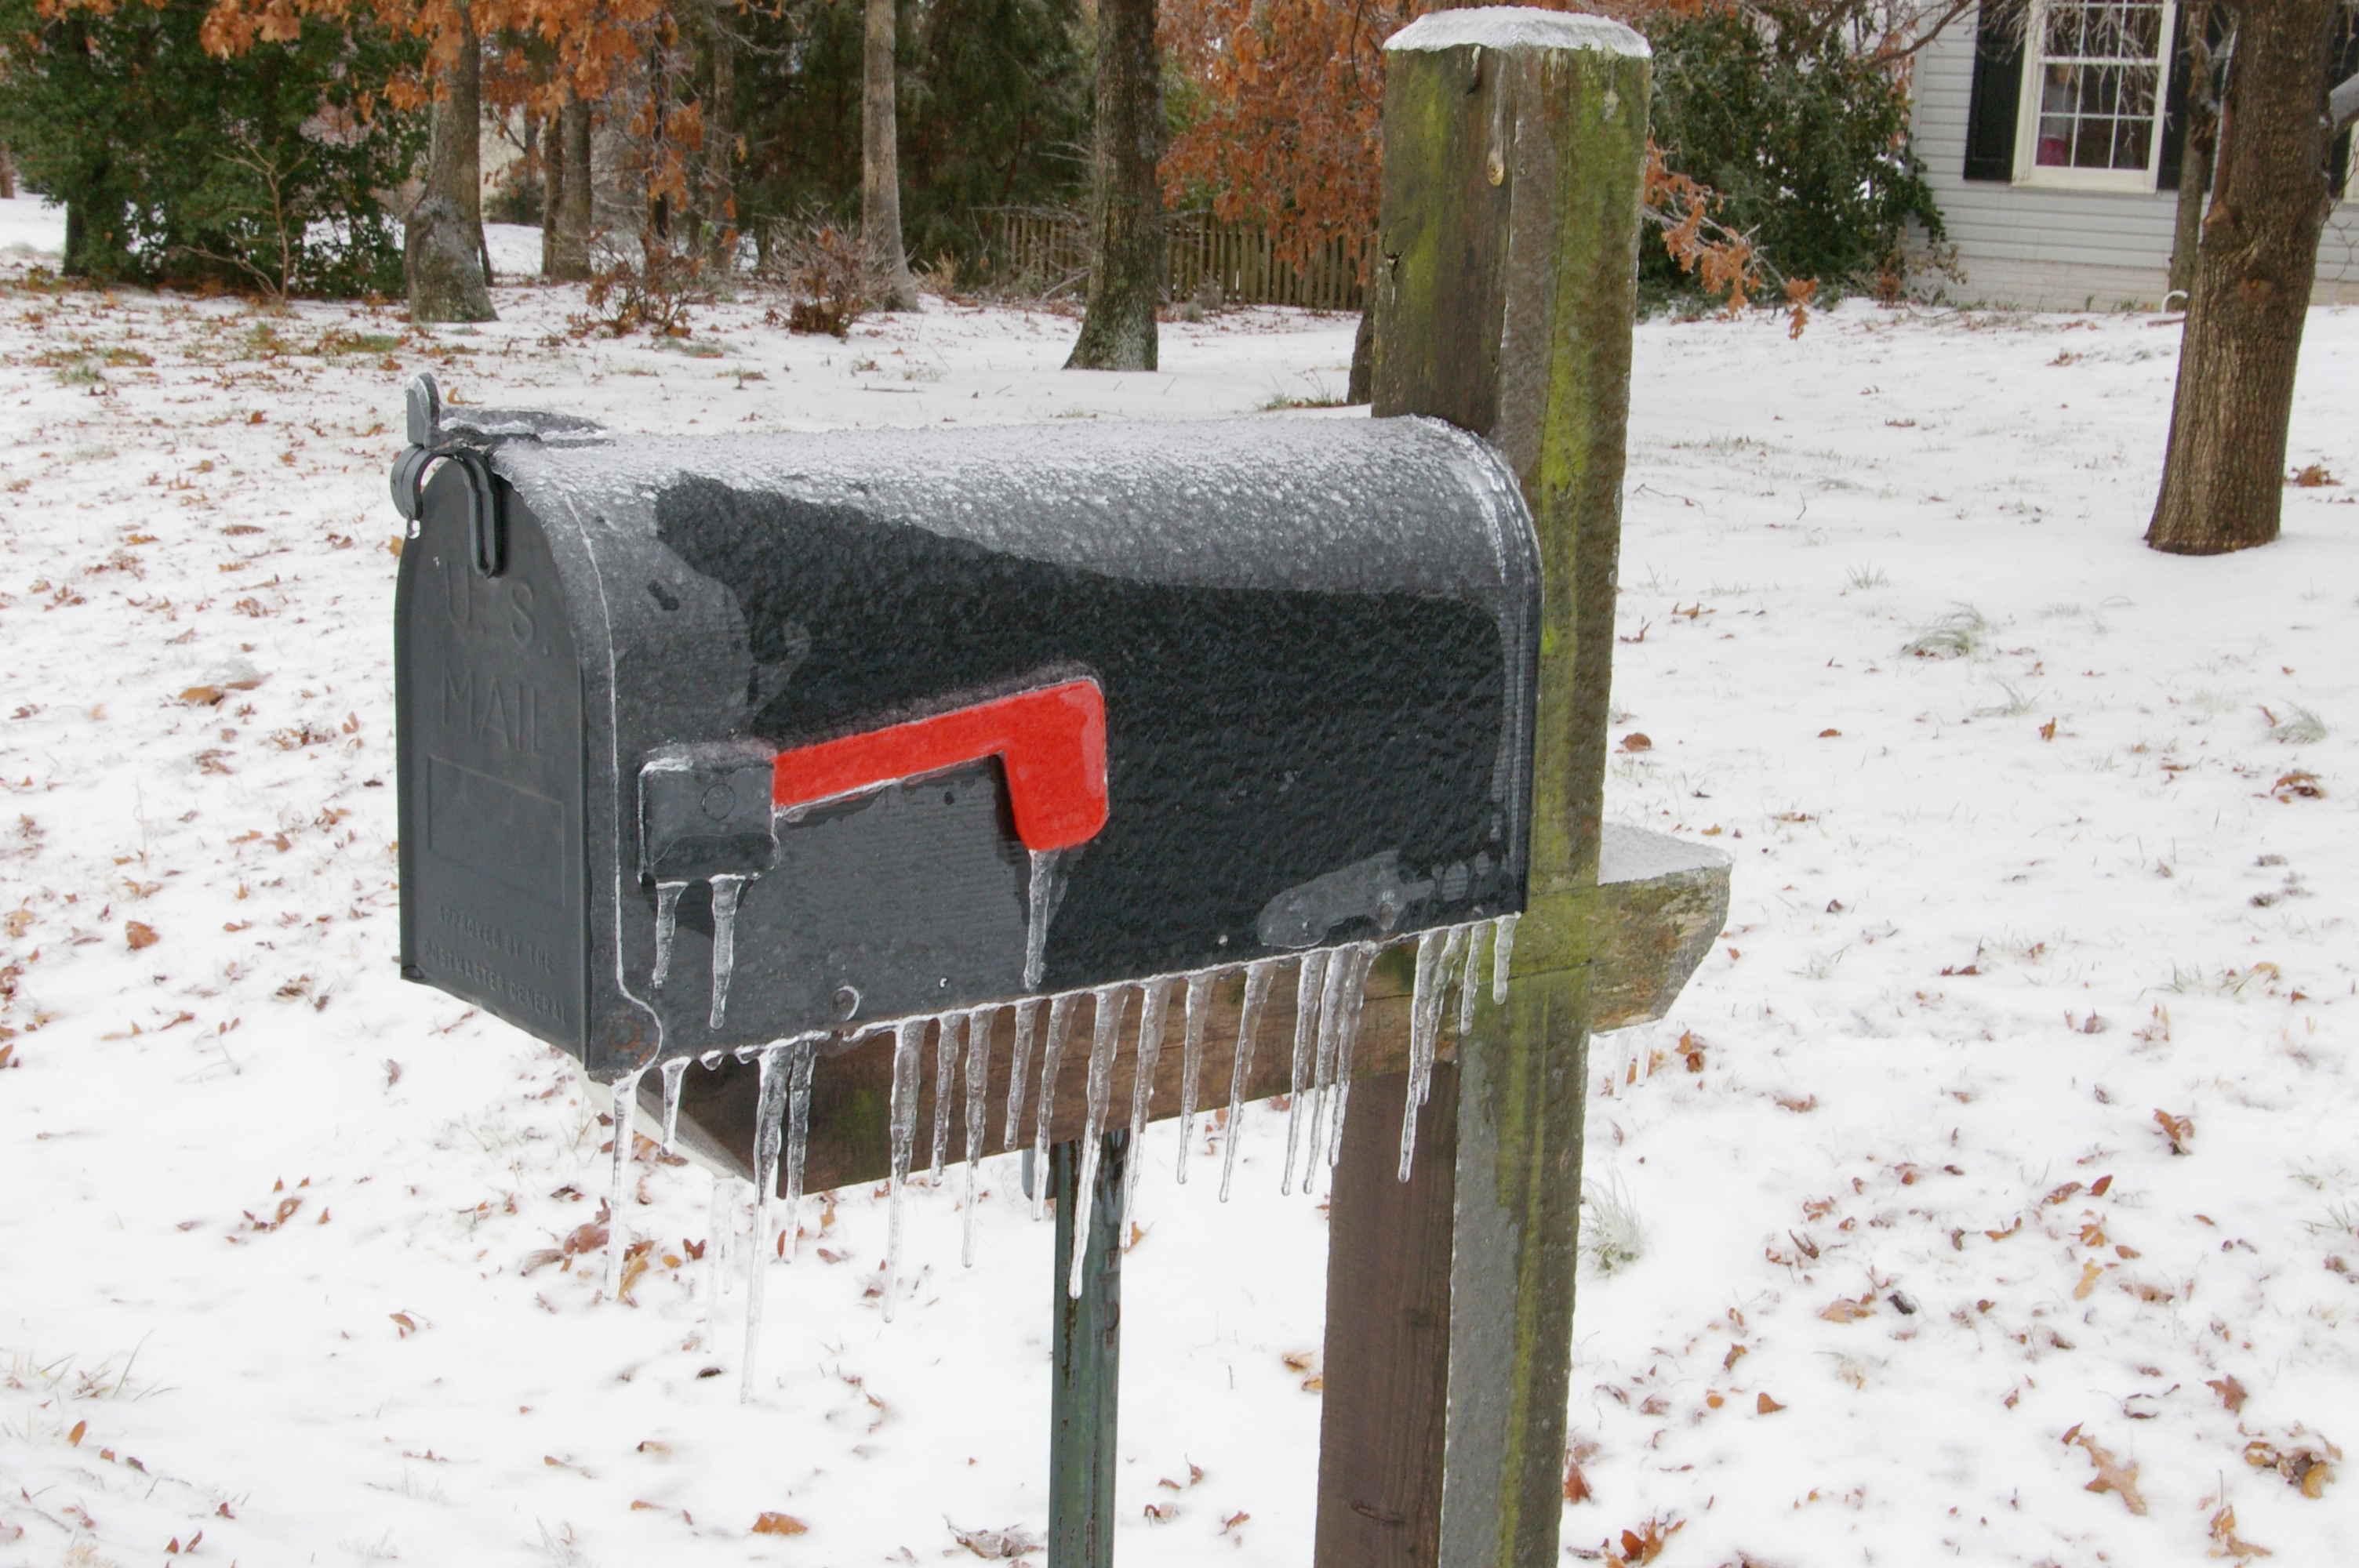 A Joroleman-style curbside mailbox with red semaphore flag. When raised, the flag indicates outgoing mail. The ice-covered mailbox was photographed in Spotsylvania County, Virginia, by Joy Schoenberger on February 14, 2007.